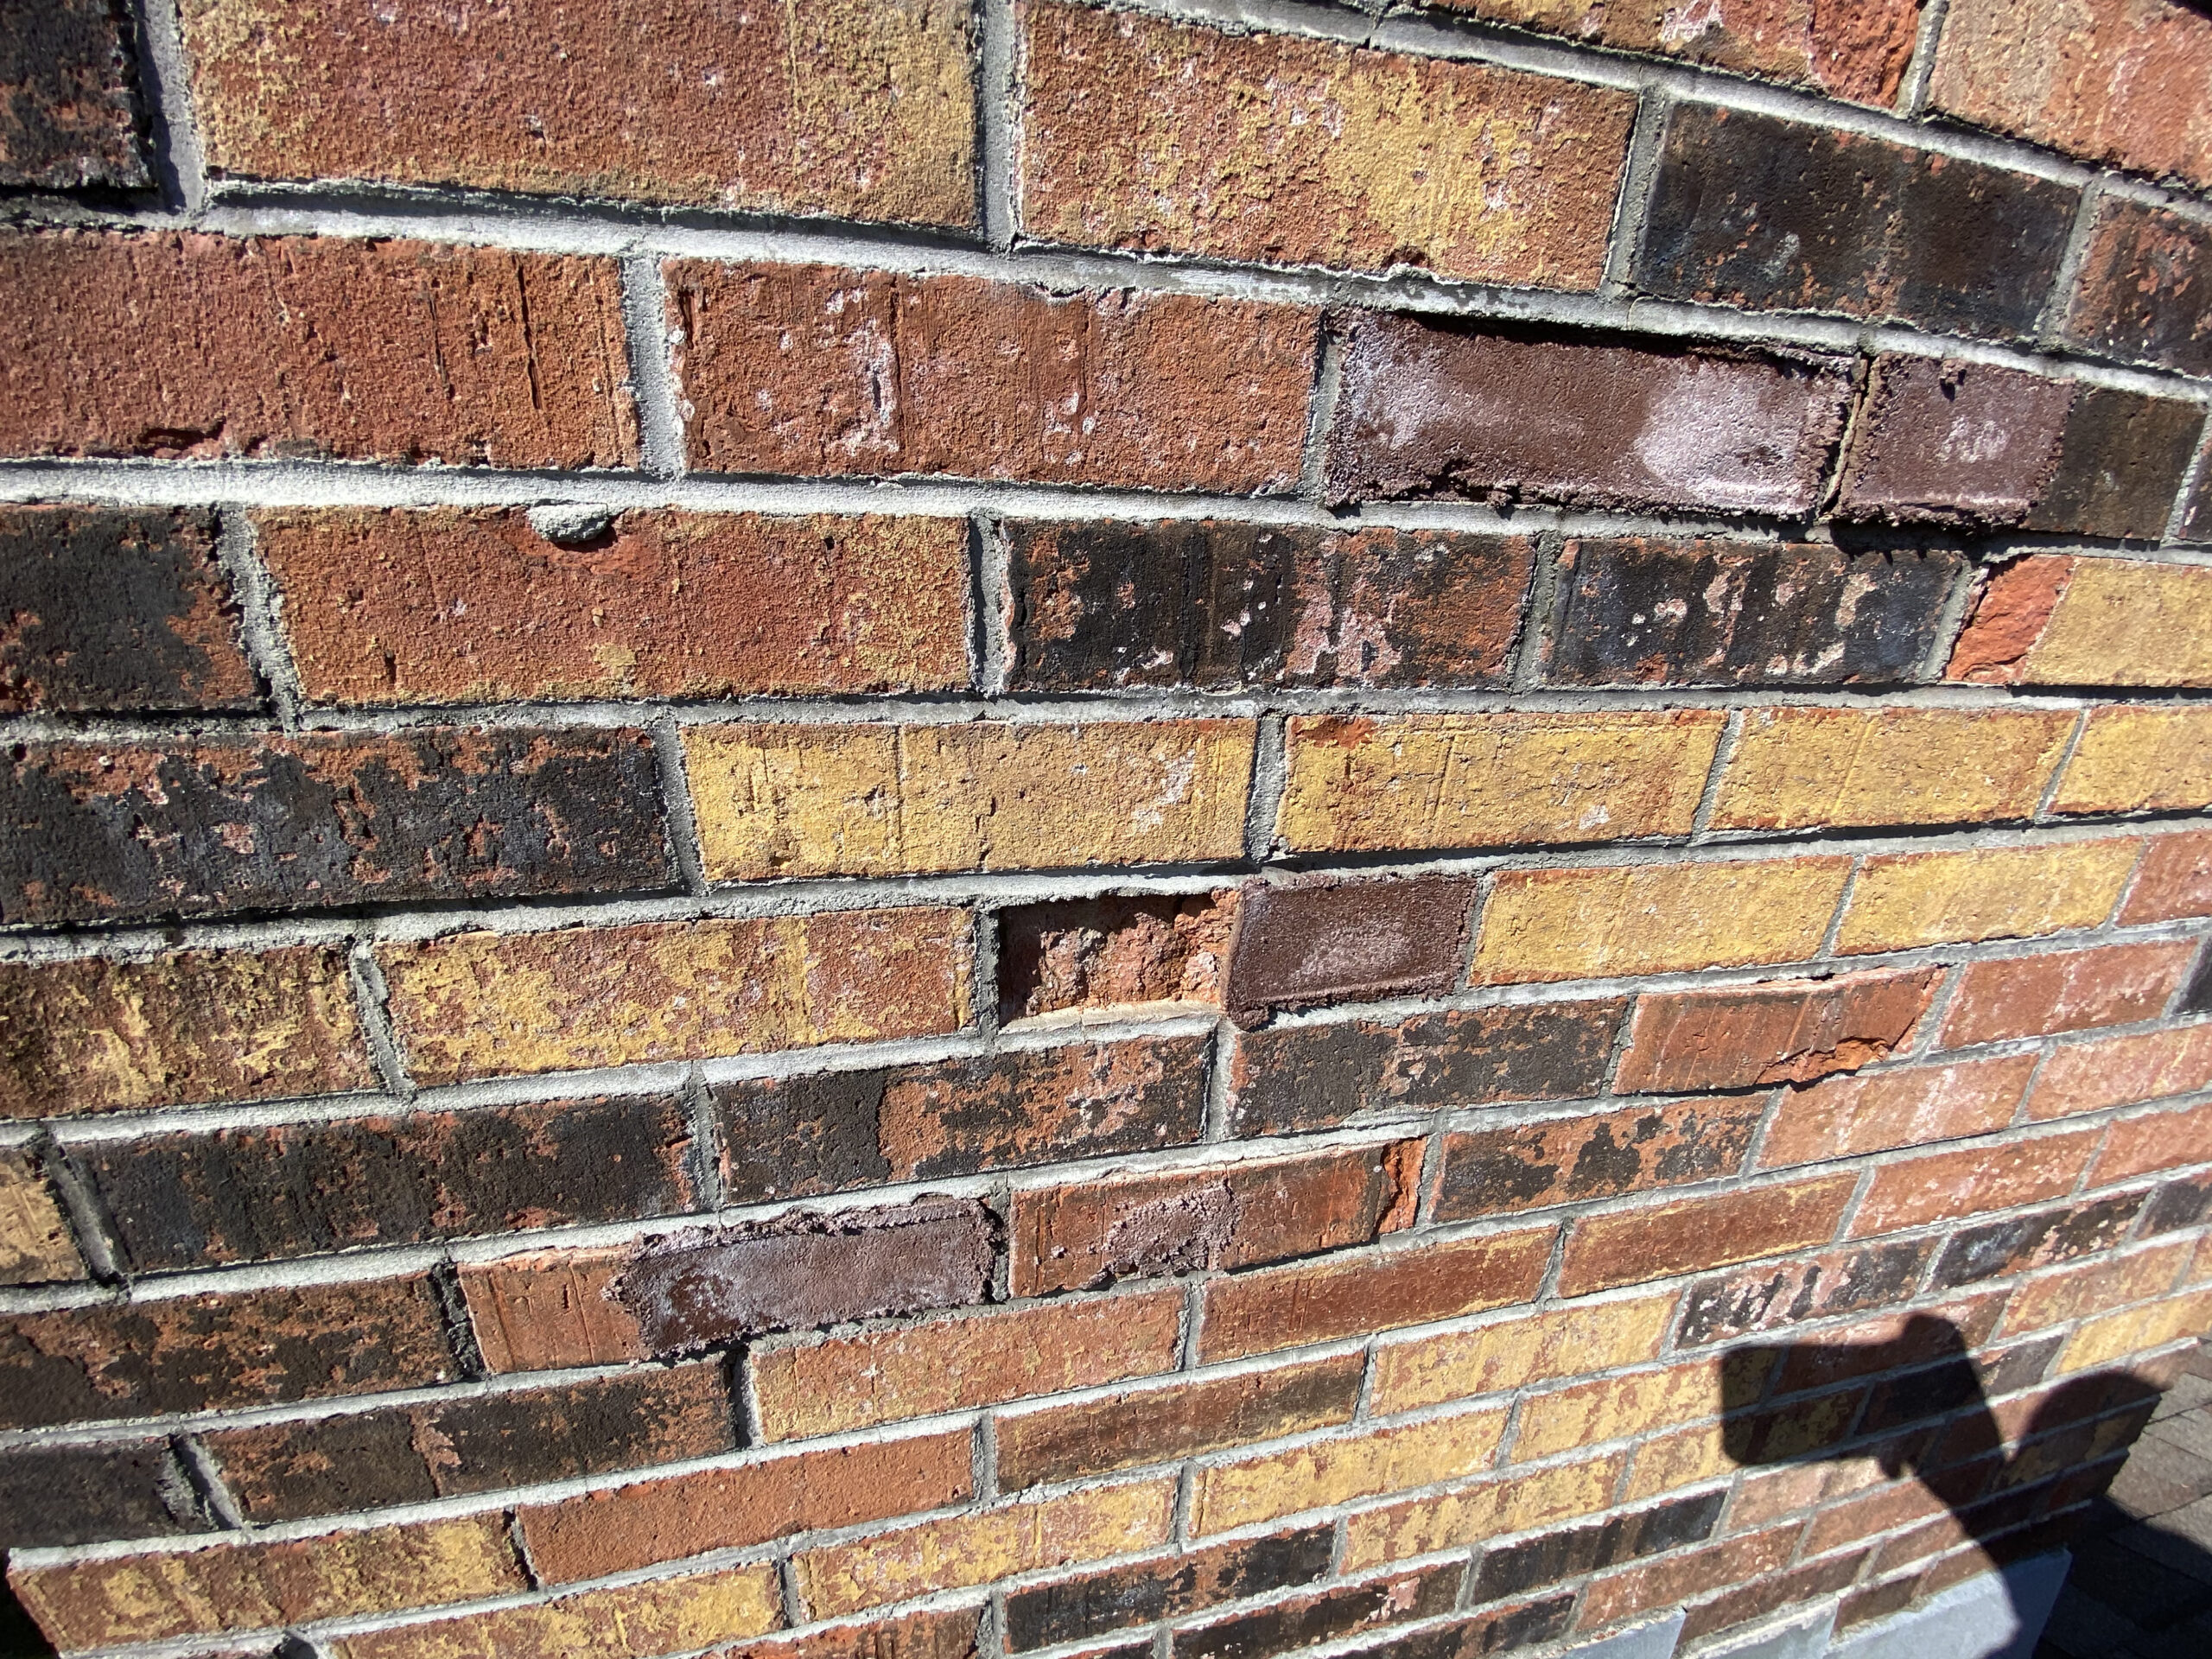 This is a picture of a brick chimney with cracks in the brick